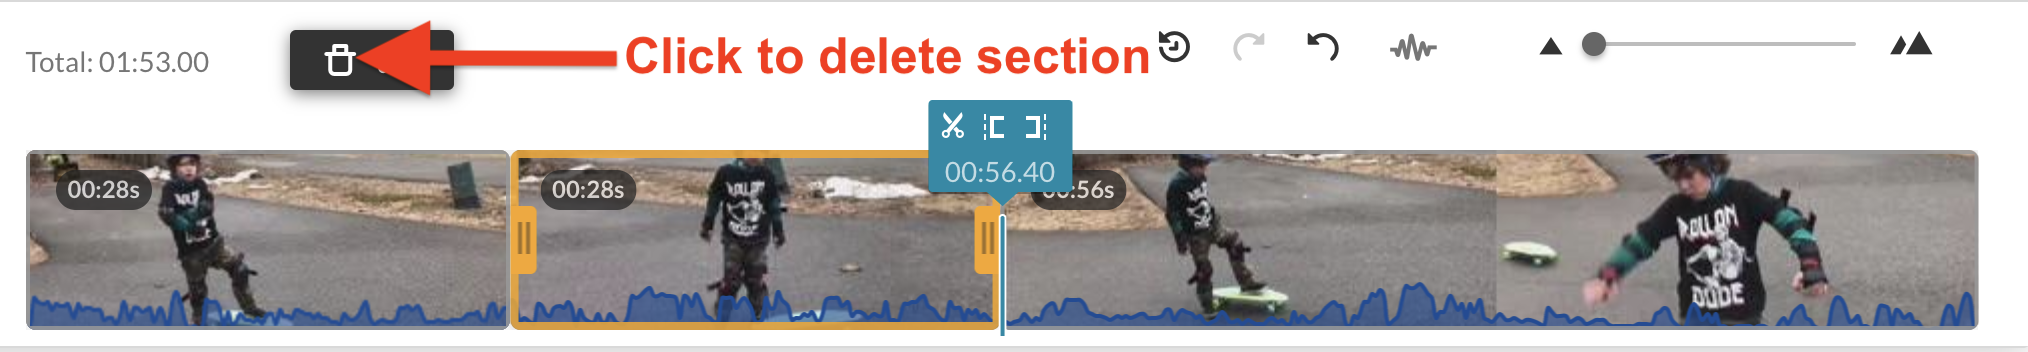 screenshot of deleting section